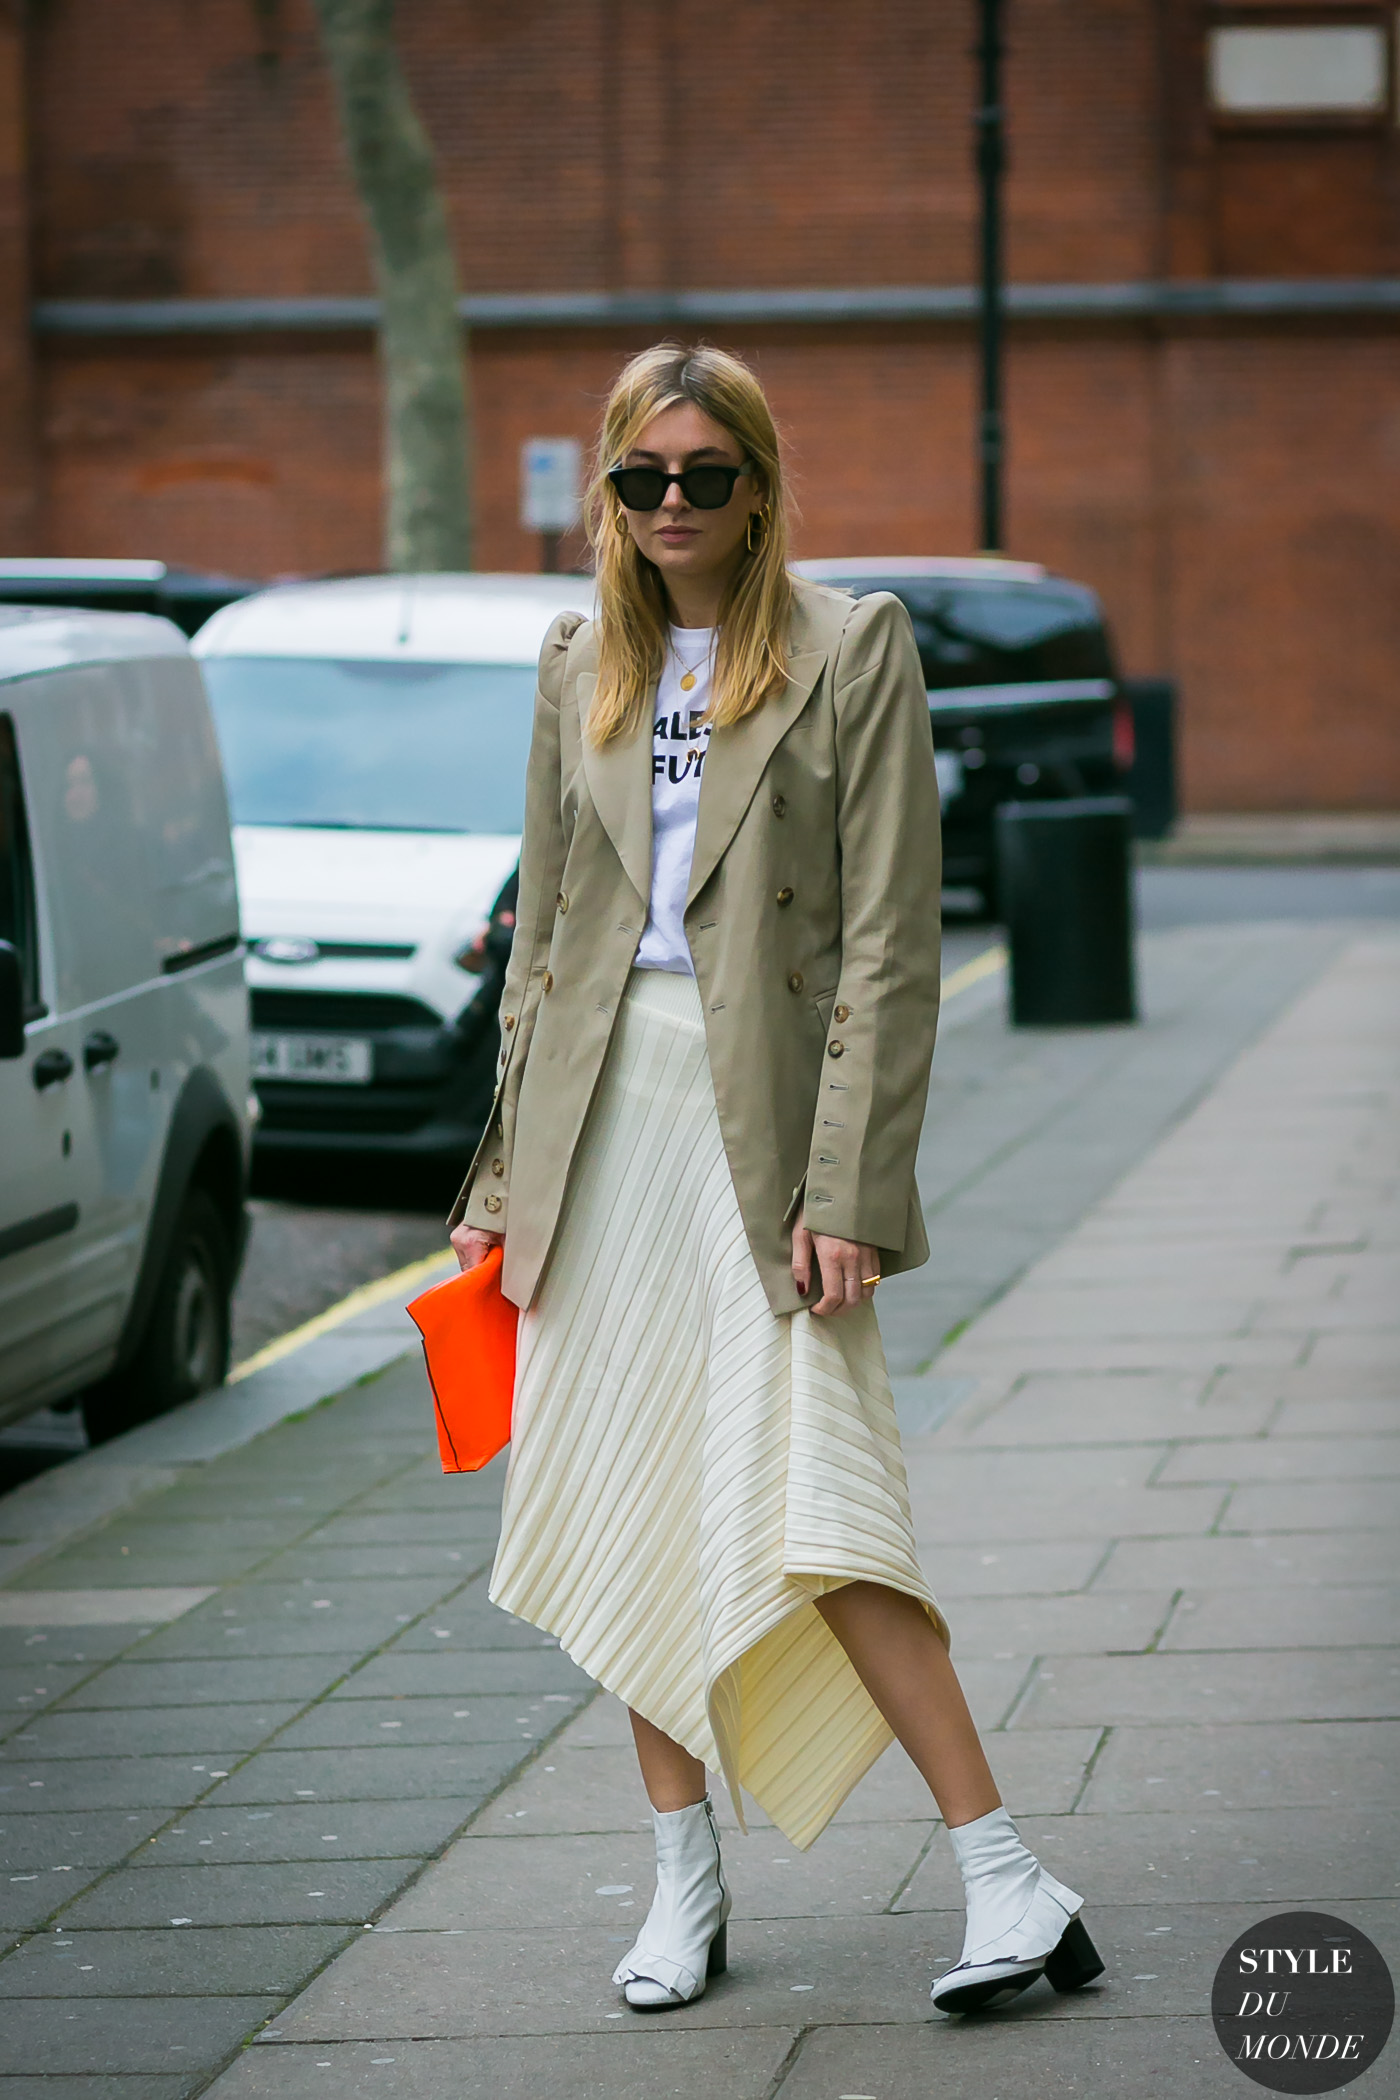 Camille Charriere by STYLEDUMONDE Street Style Fashion Photography